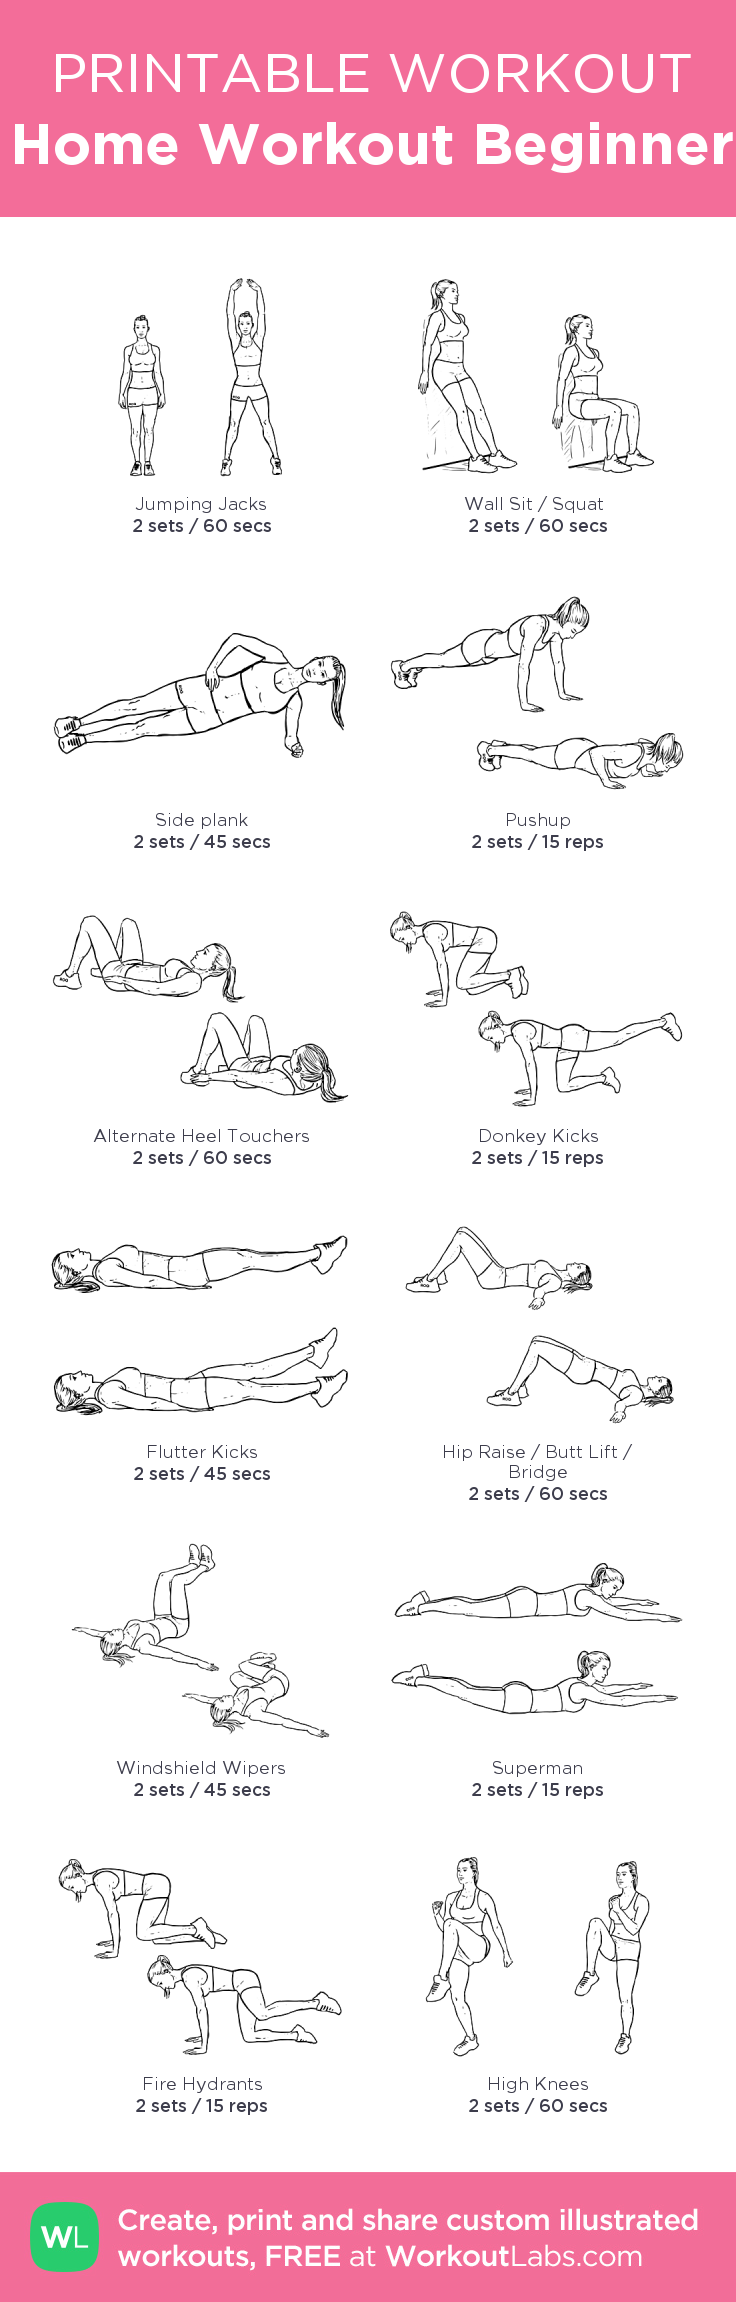 Epic image in free printable workout plans